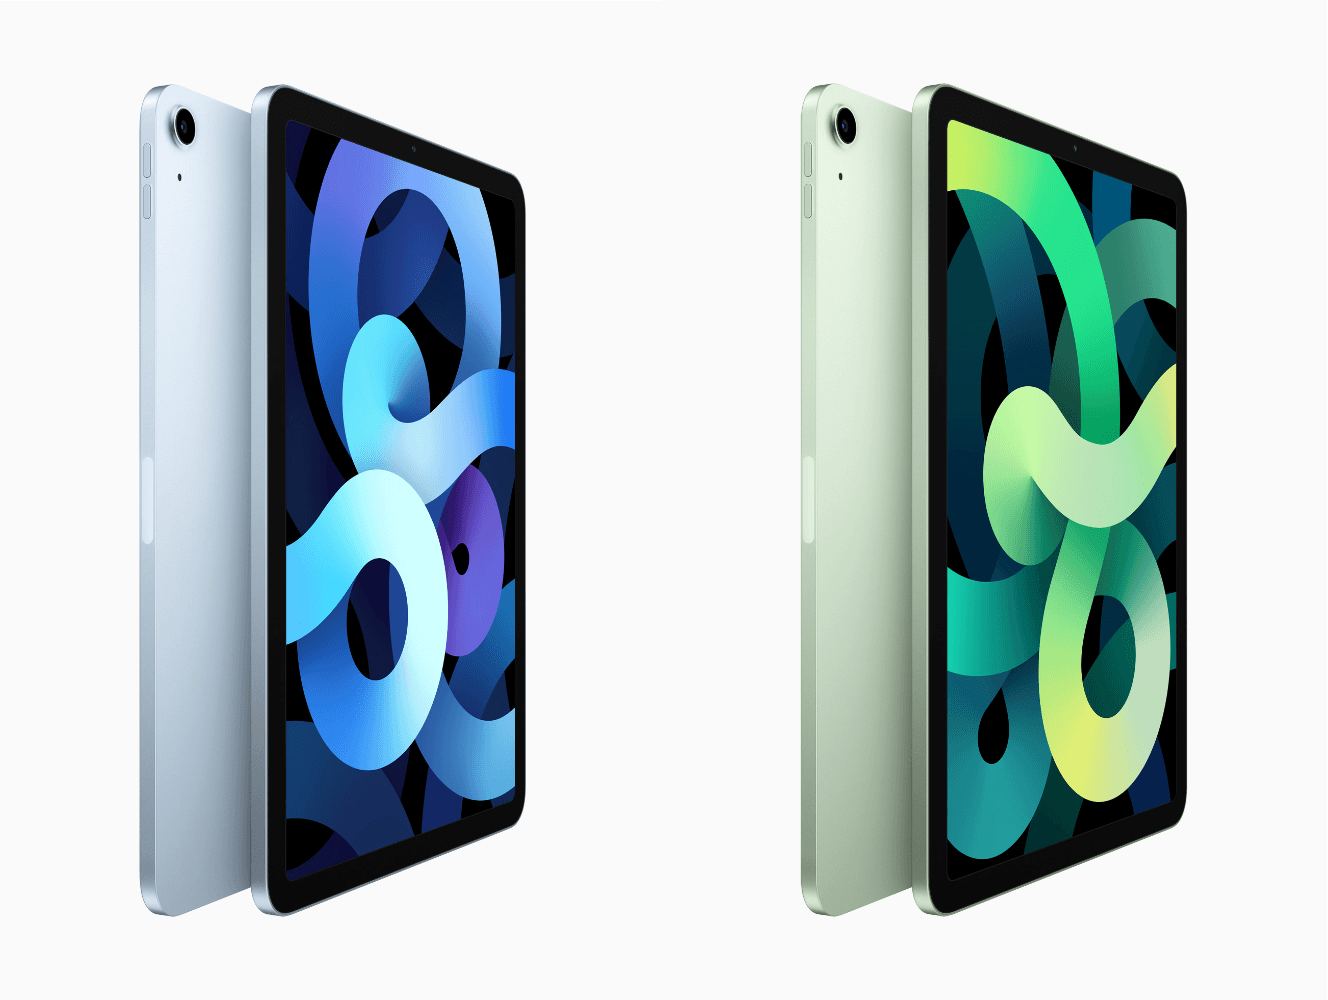 The new iPad Air resembles the iPad Pro's design. Source: Apple.